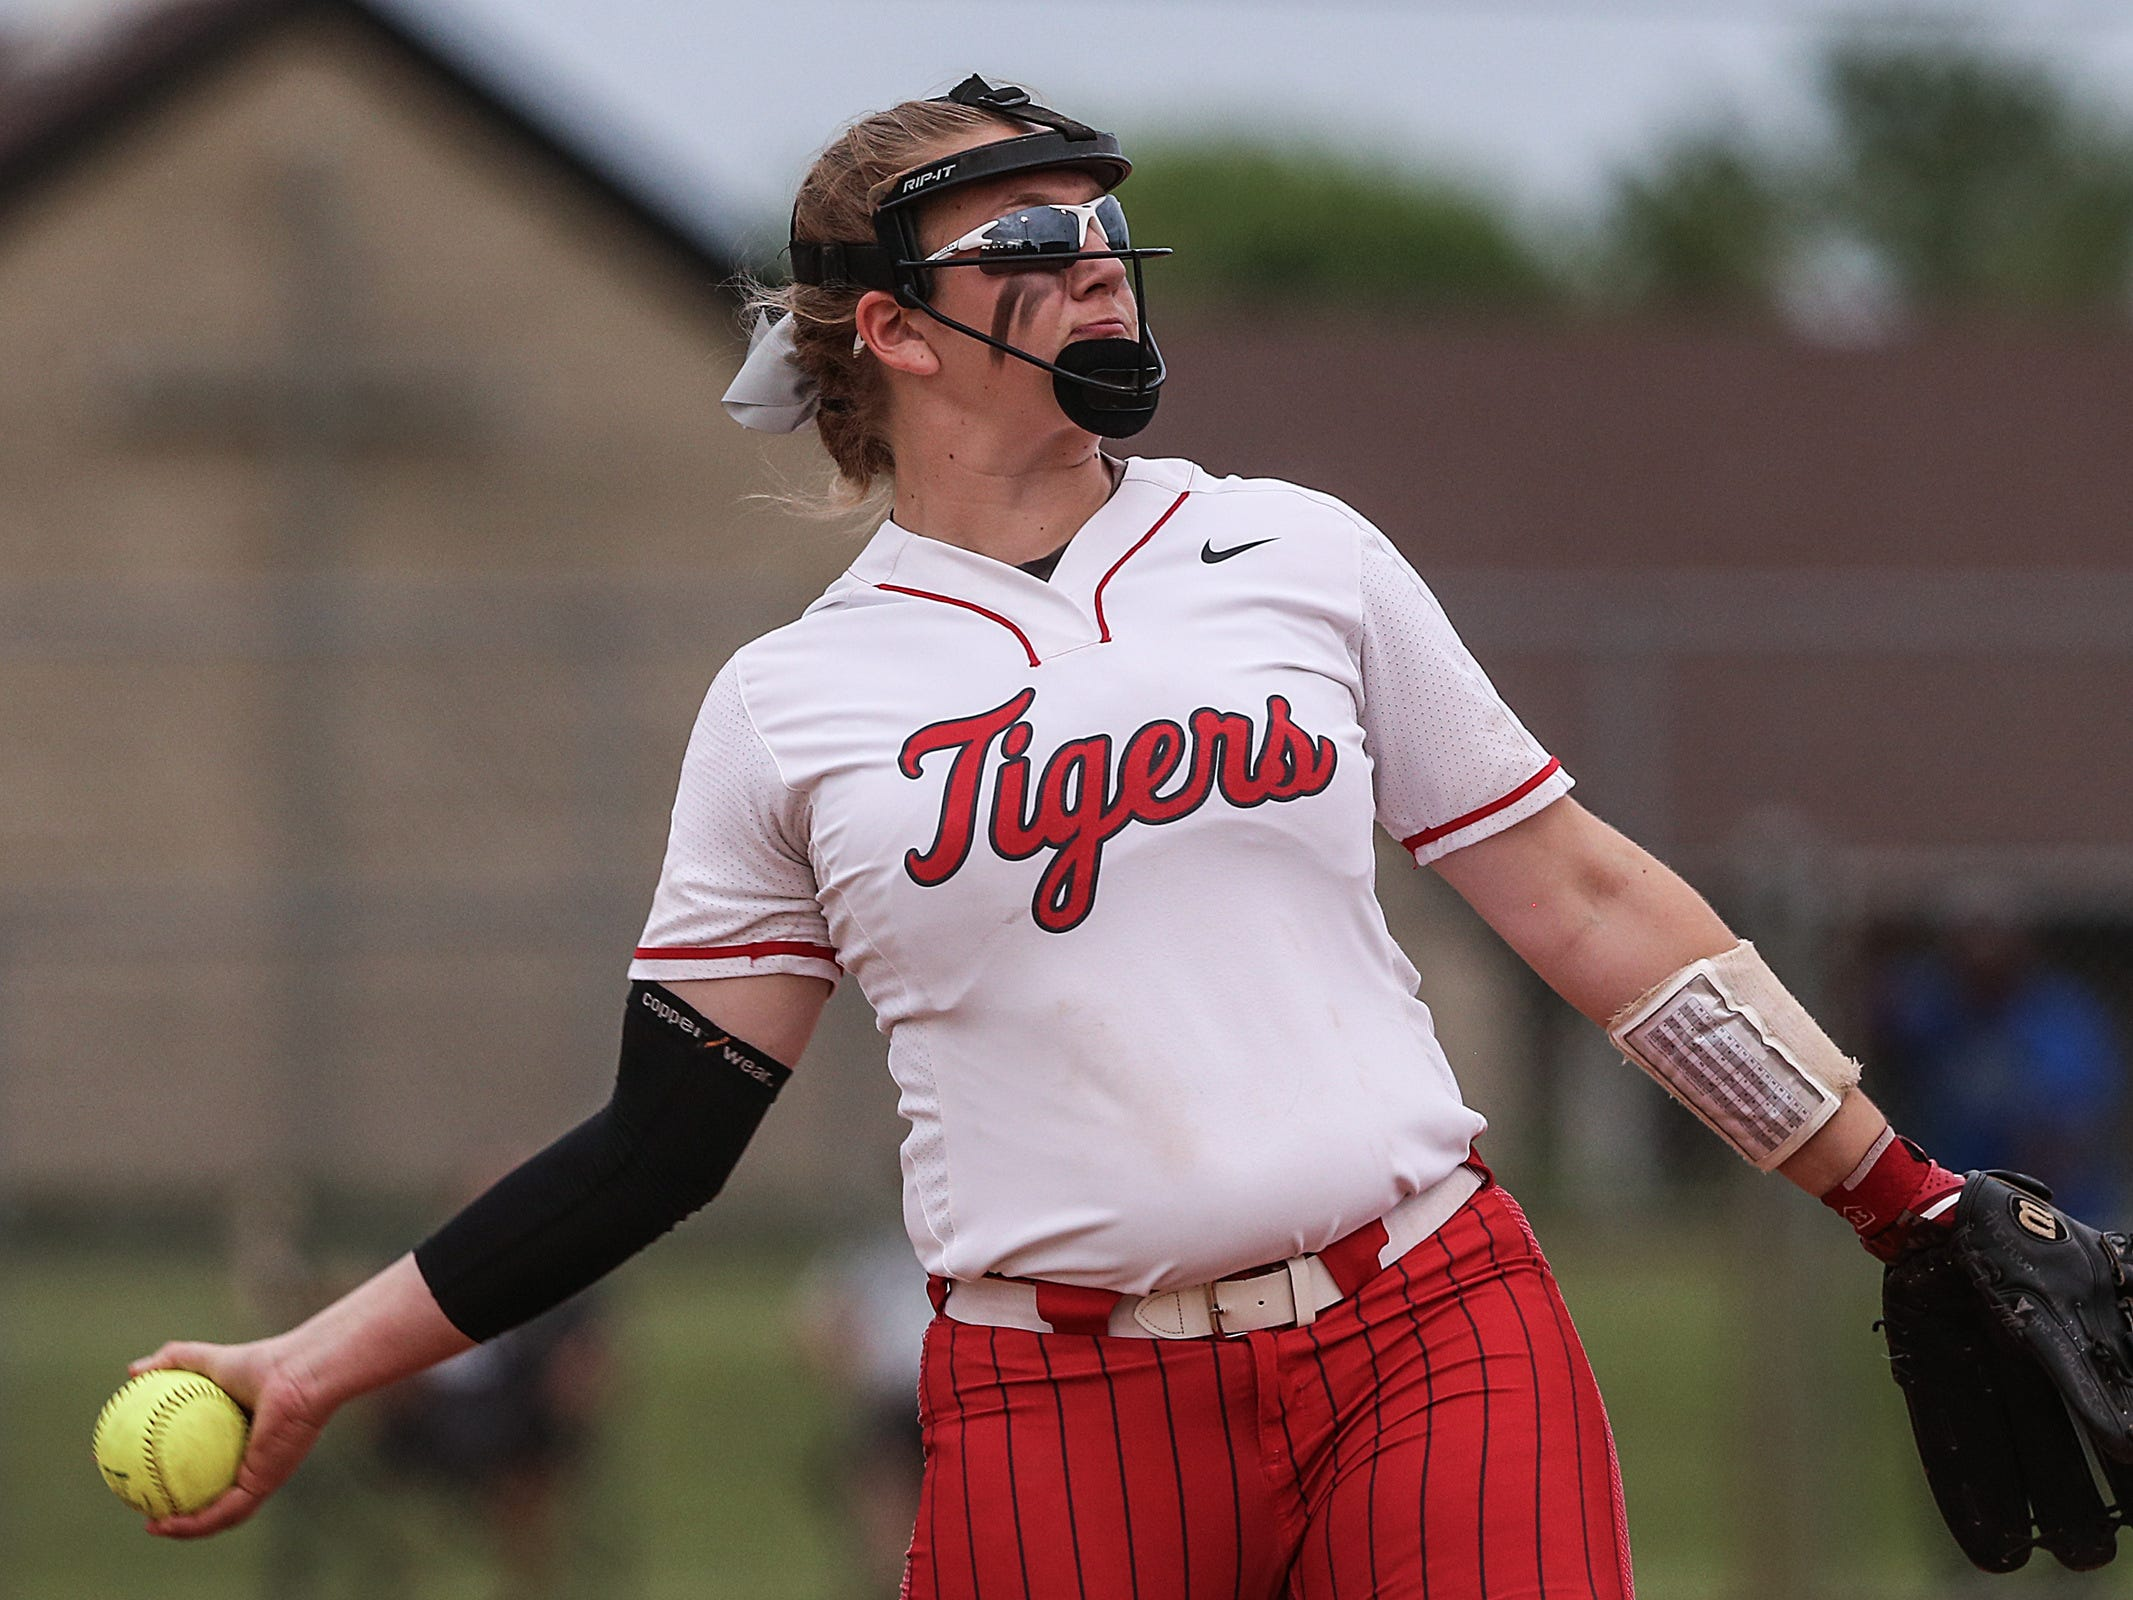 HS softball: Fishers blasts Carmel 10-0 to open sectional play